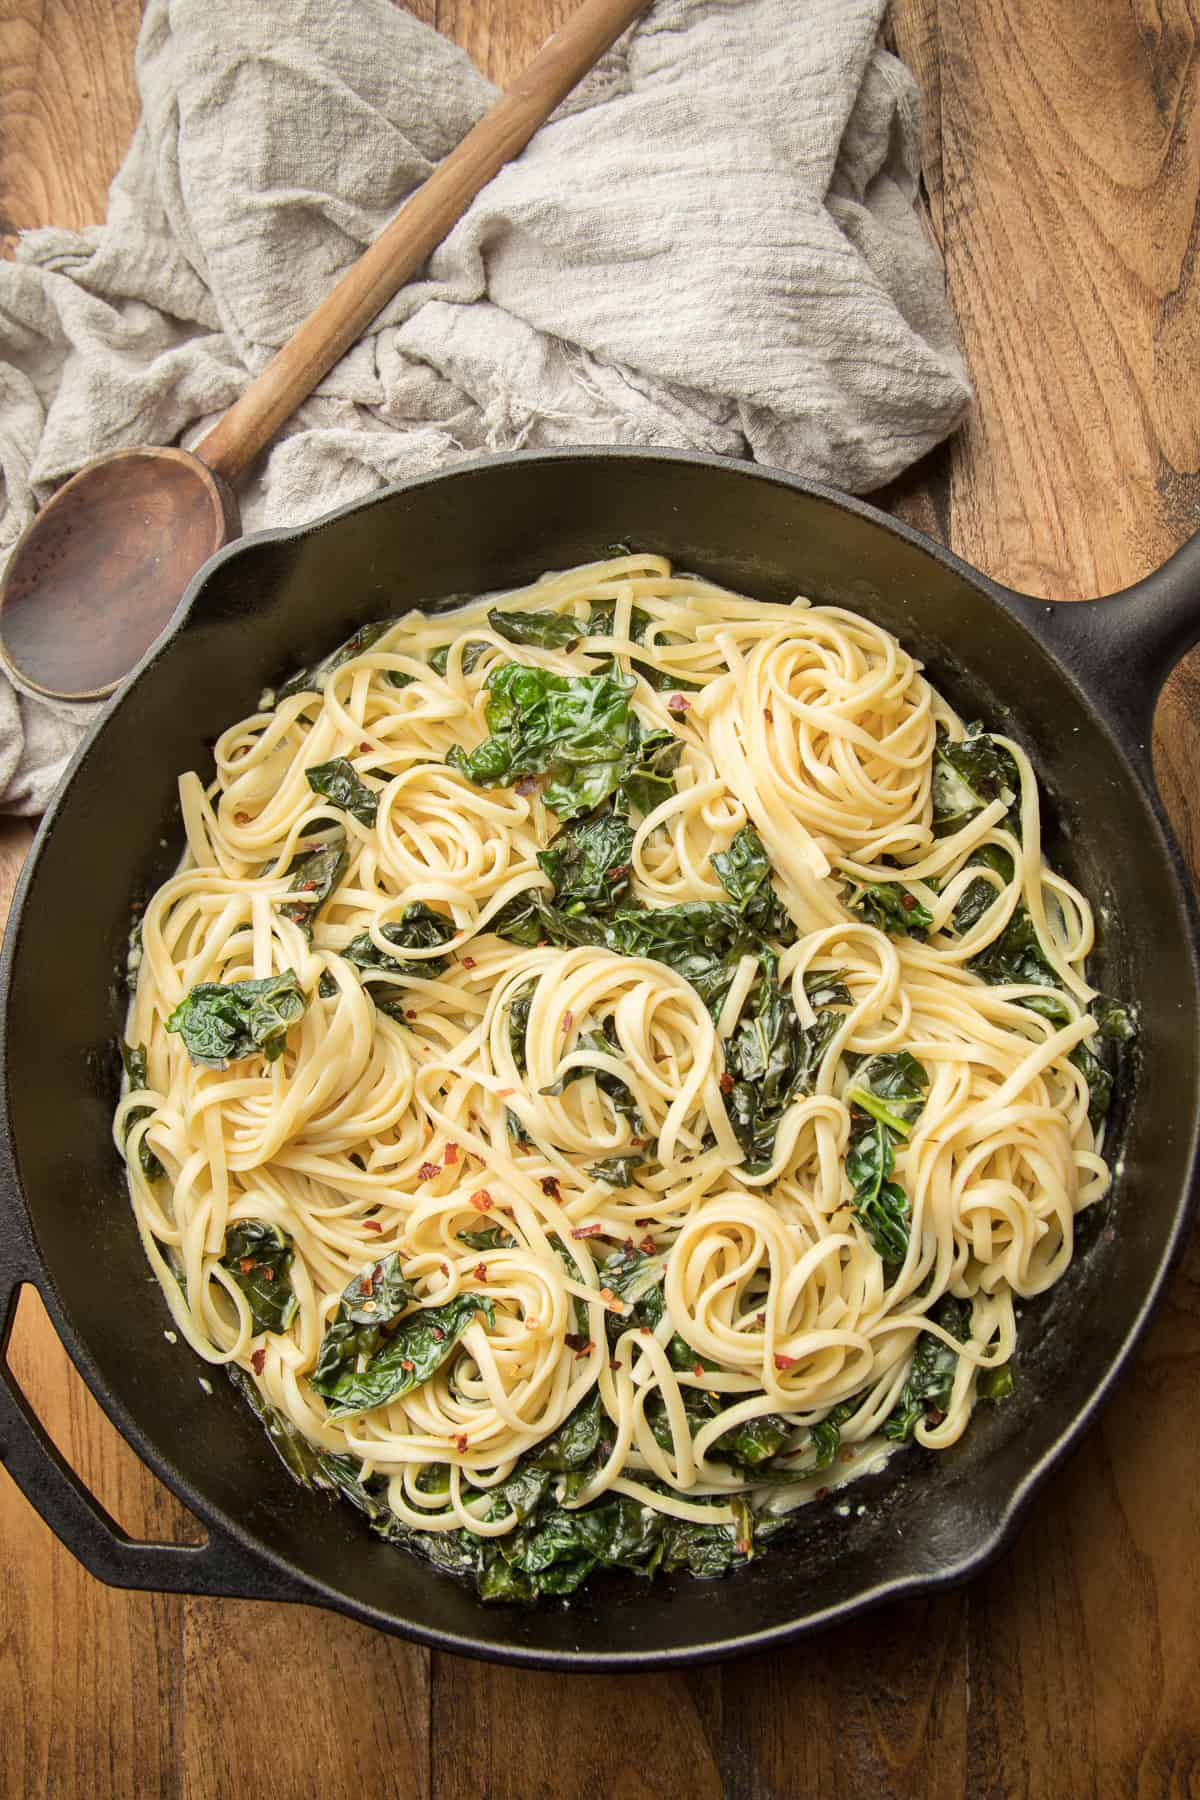 Skillet of Creamy Kale Pasta and Wooden Spoon on a Wooden Surface